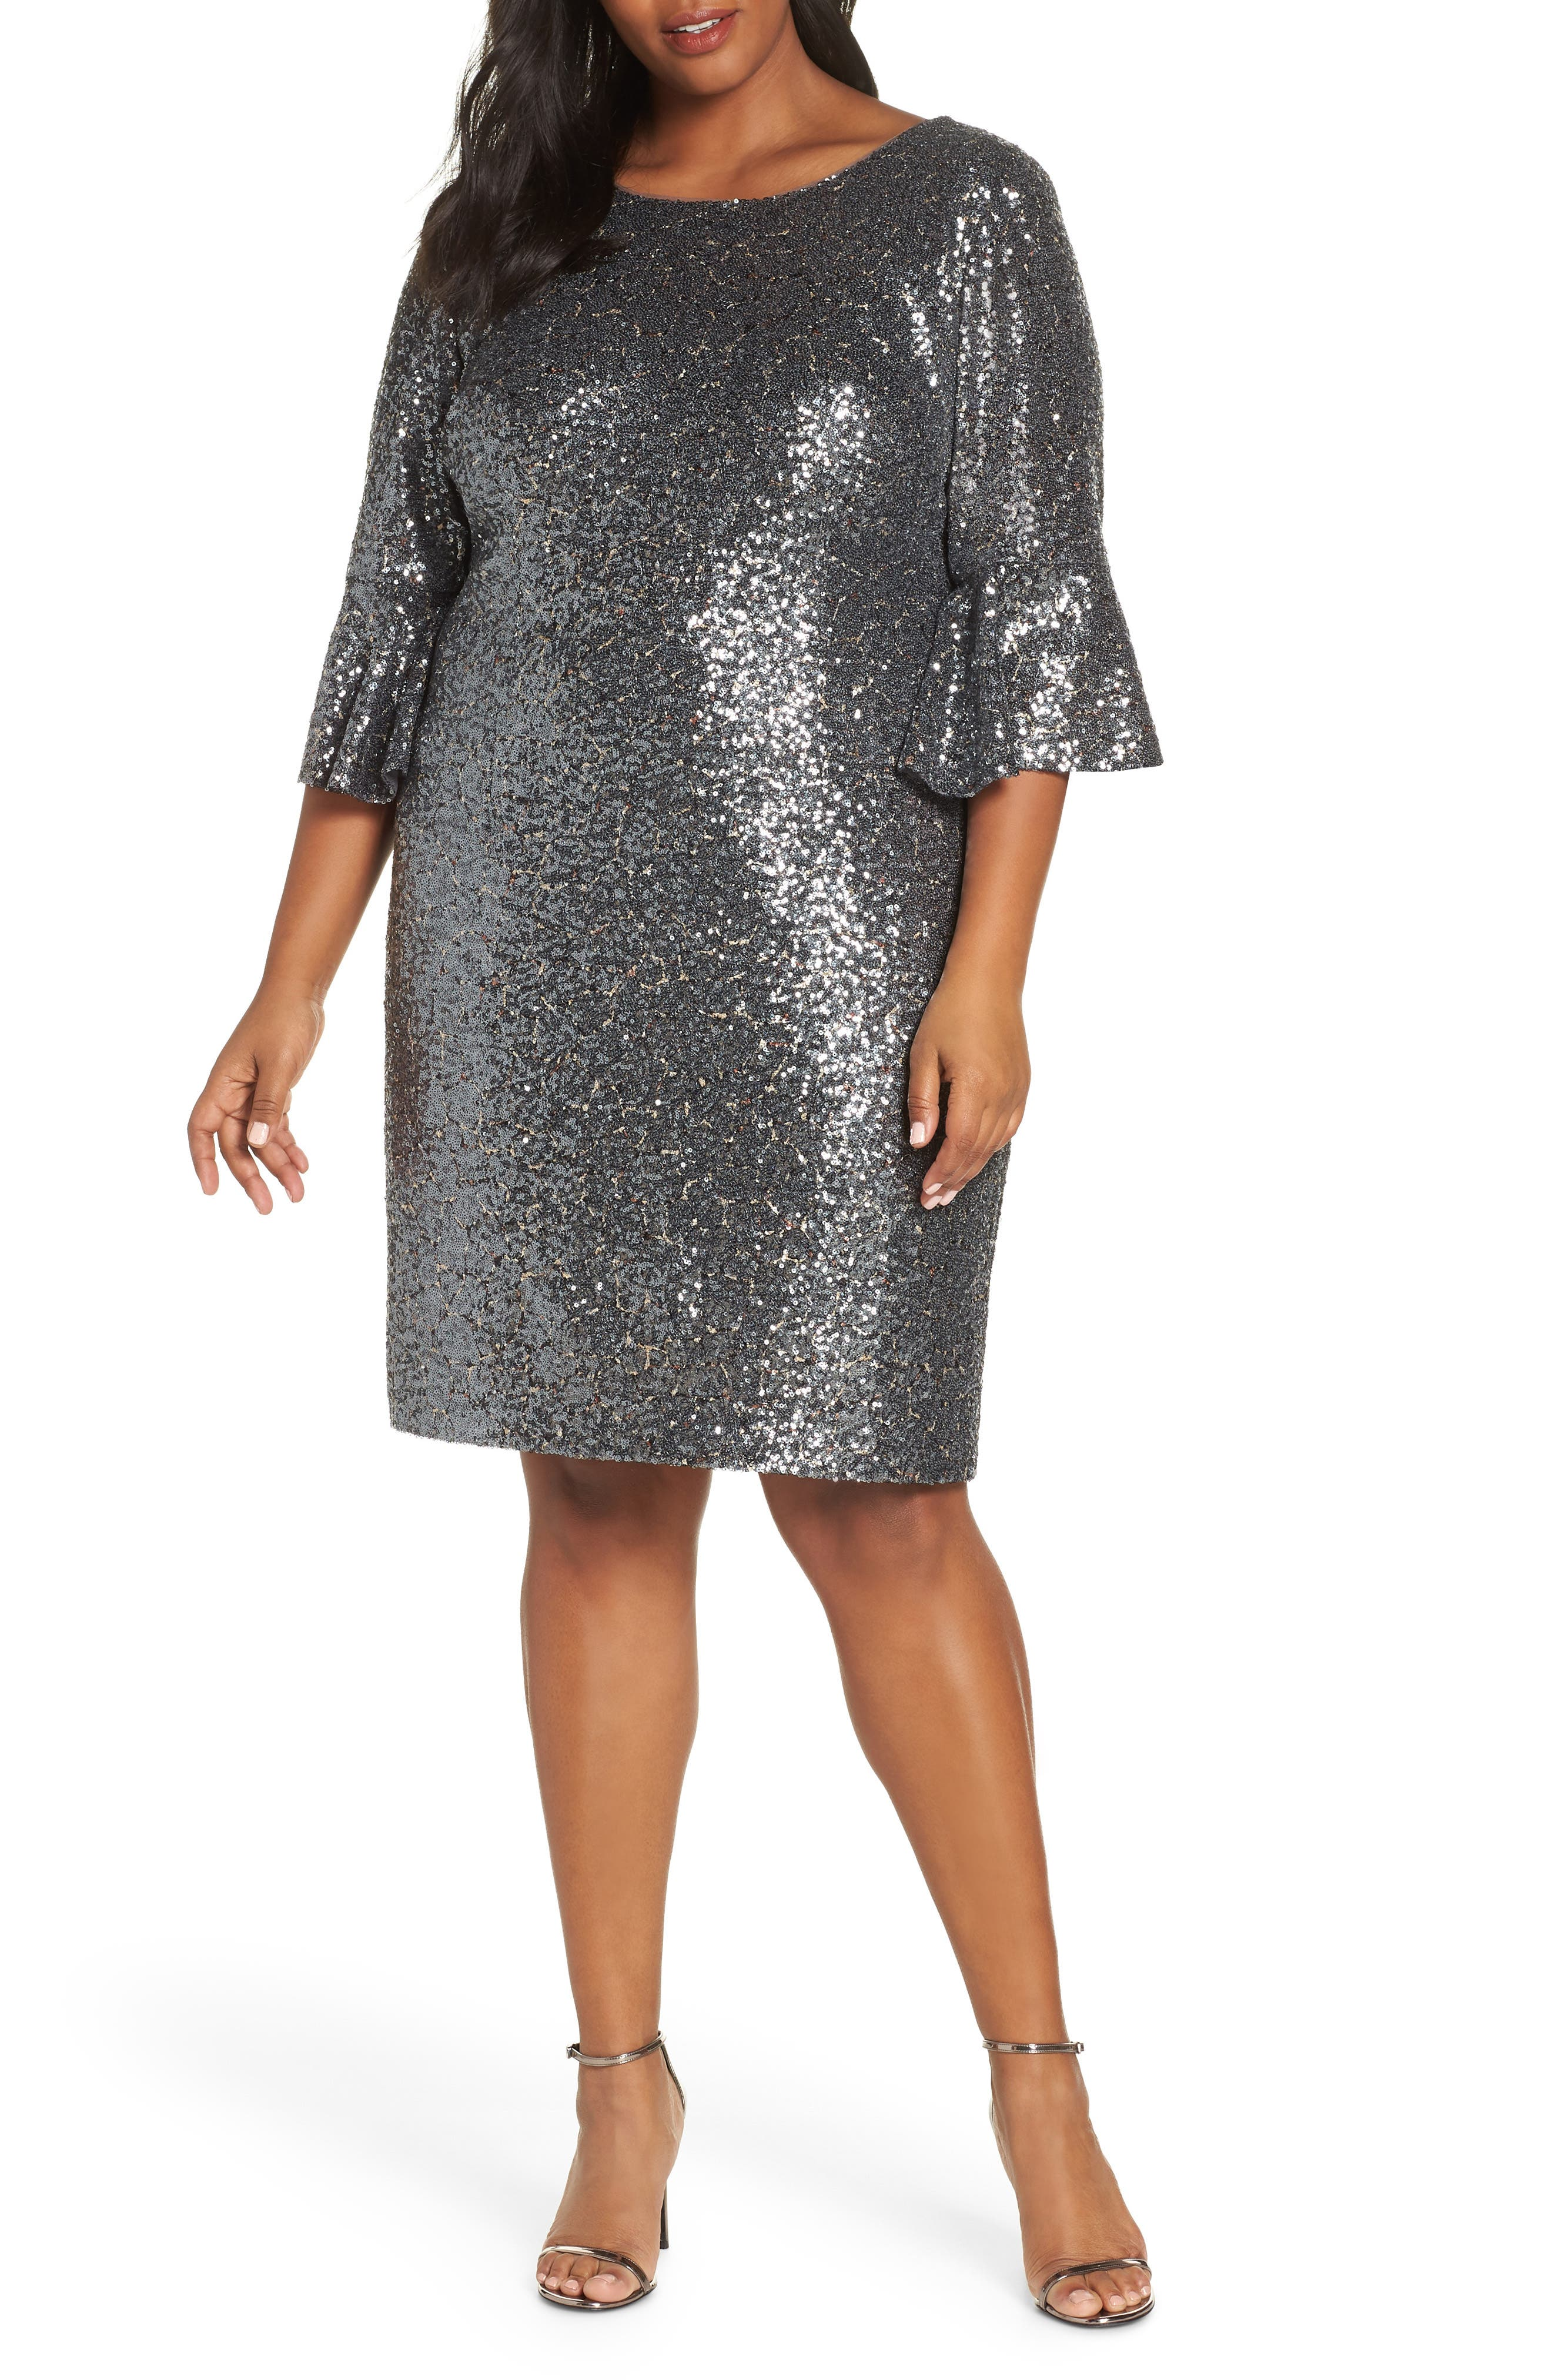 Plus Size Alex Evenings Ruffle Cuff Sequin Cocktail Dress